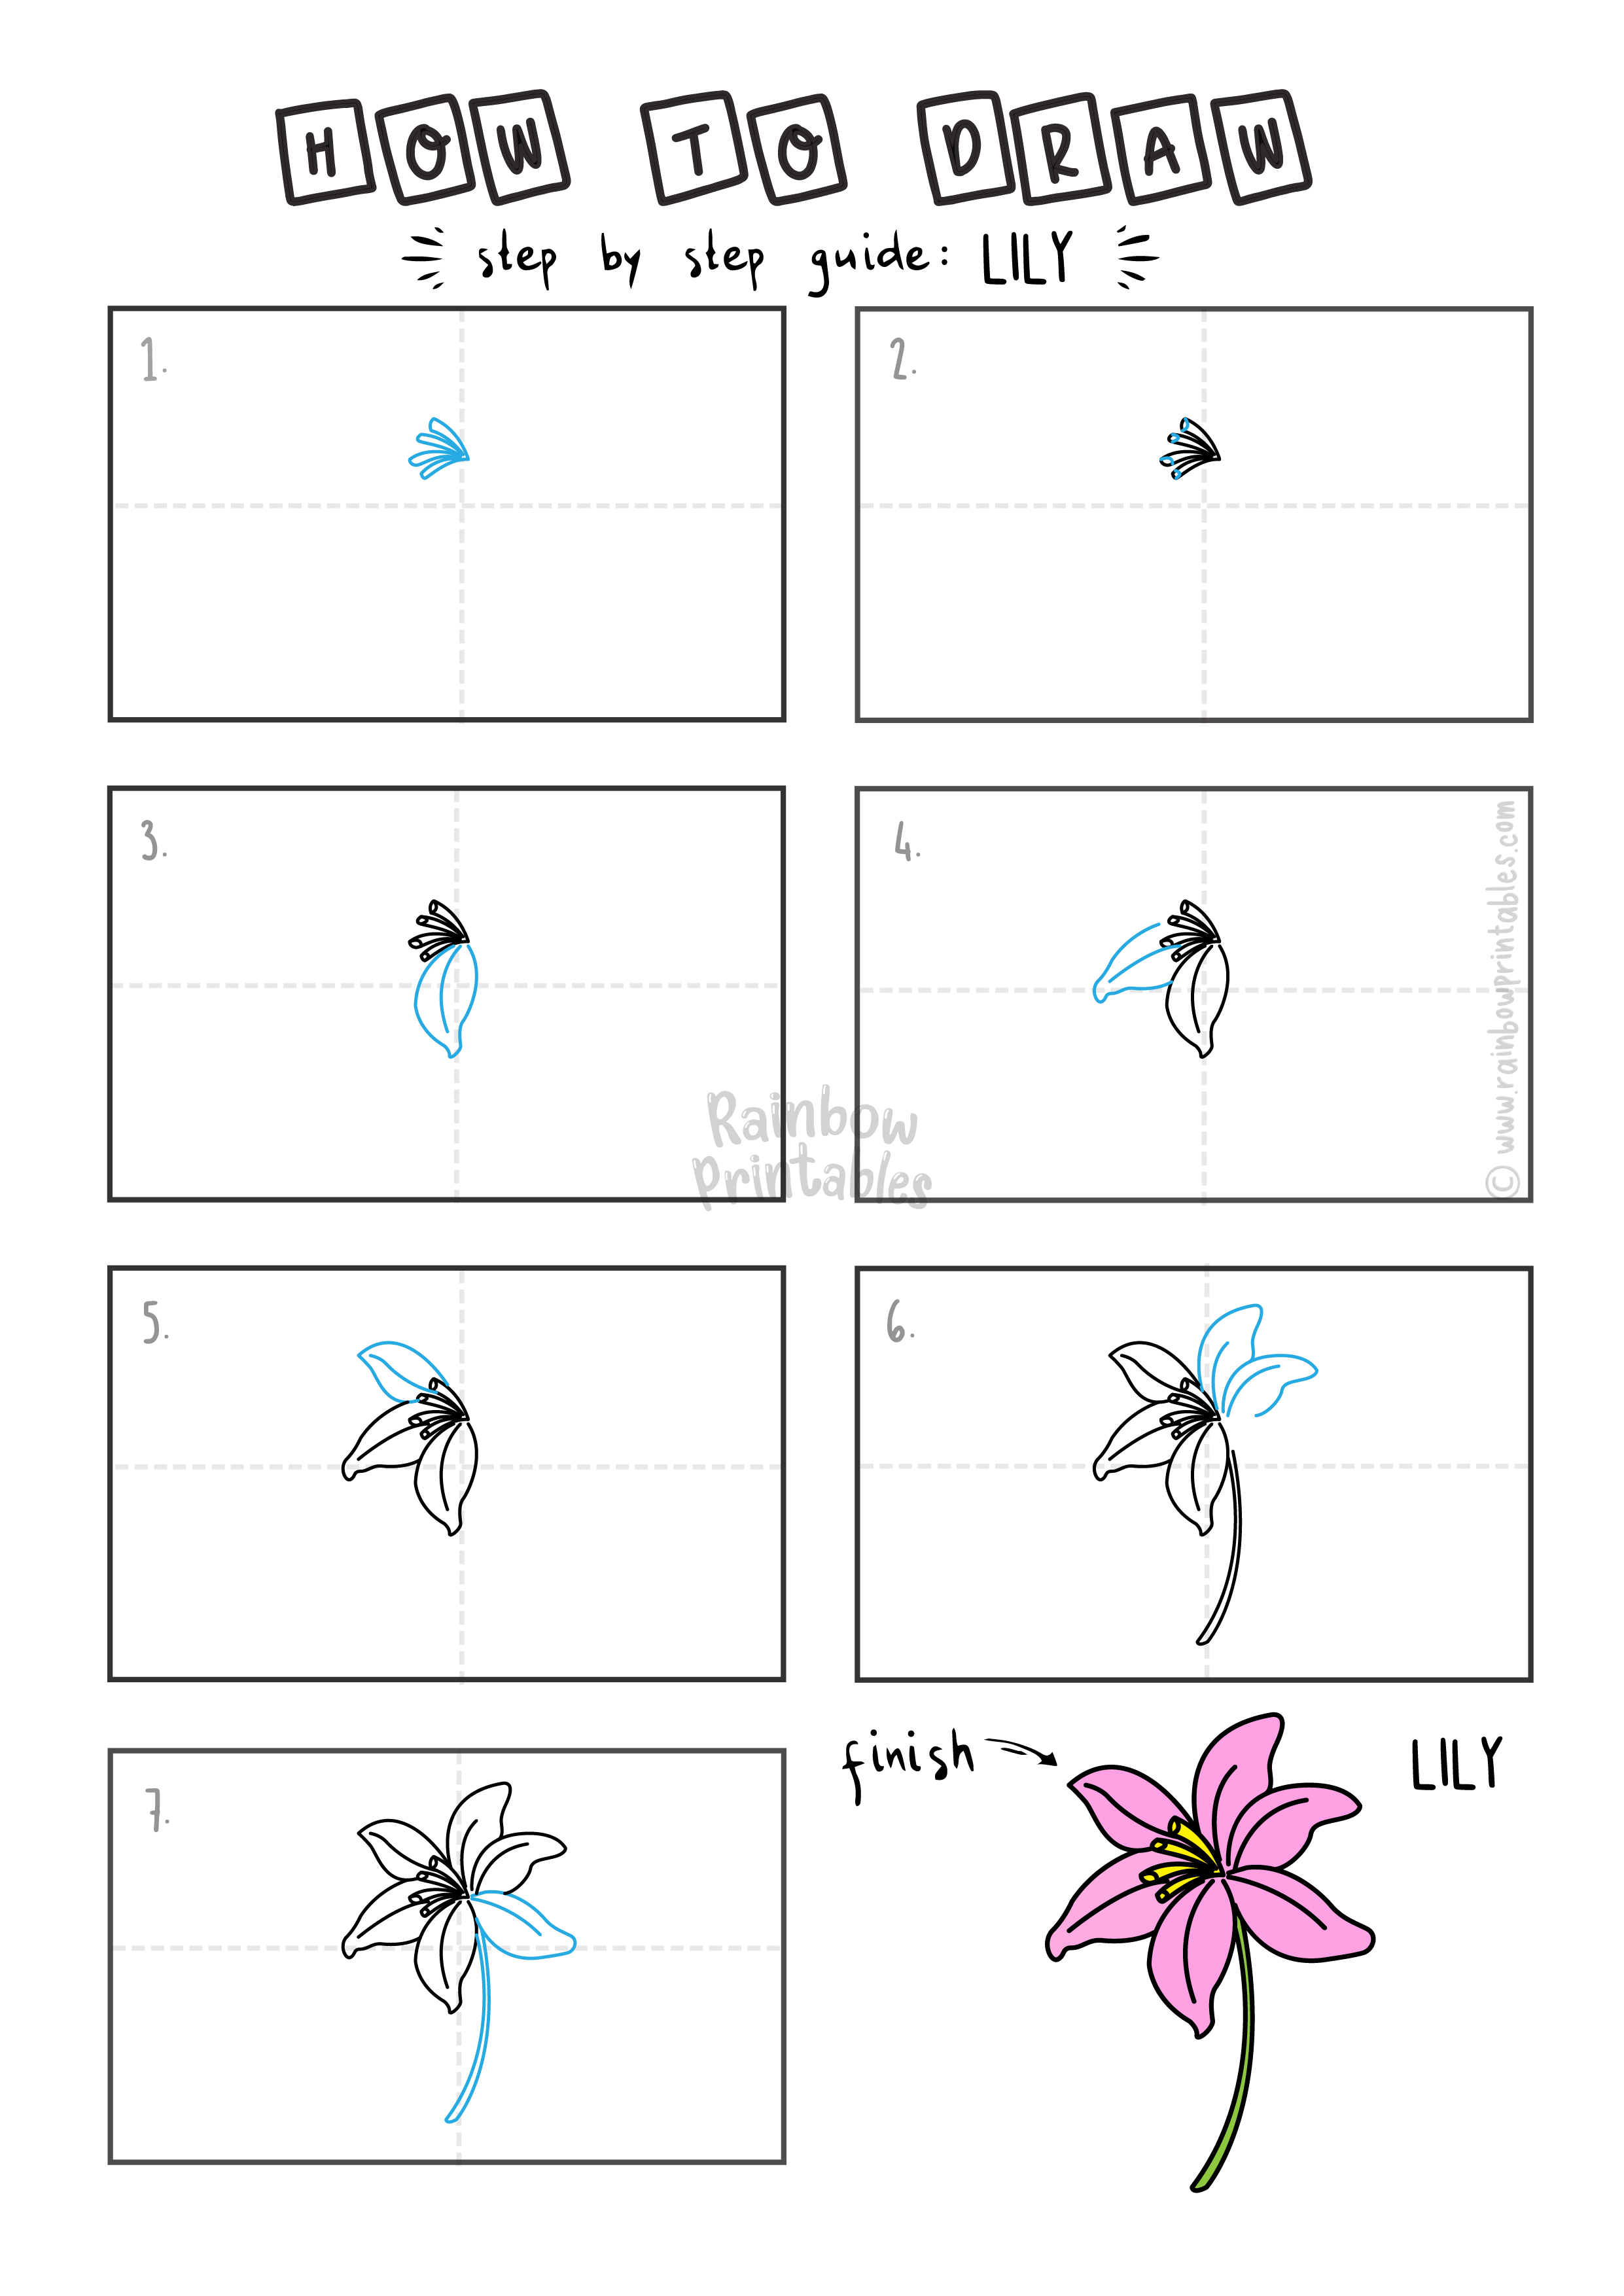 How To Draw a LILY FLOWER Step By Step Easy Simple Drawing Guide for Kids